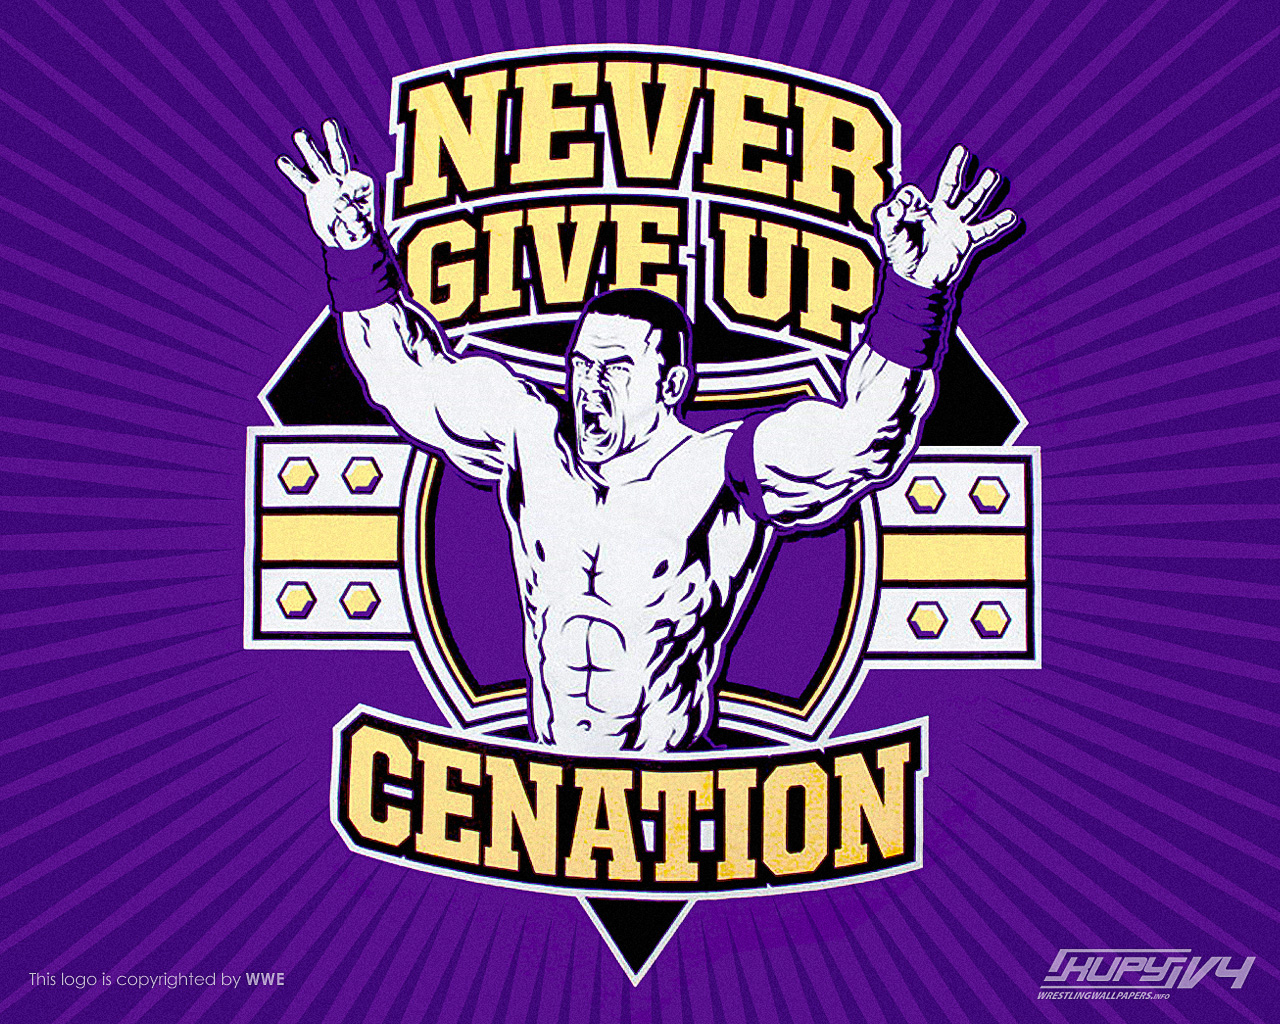 http://www.kupywrestlingwallpapers.info/wallpapers/cenation-wallpaper-1280x1024.jpg